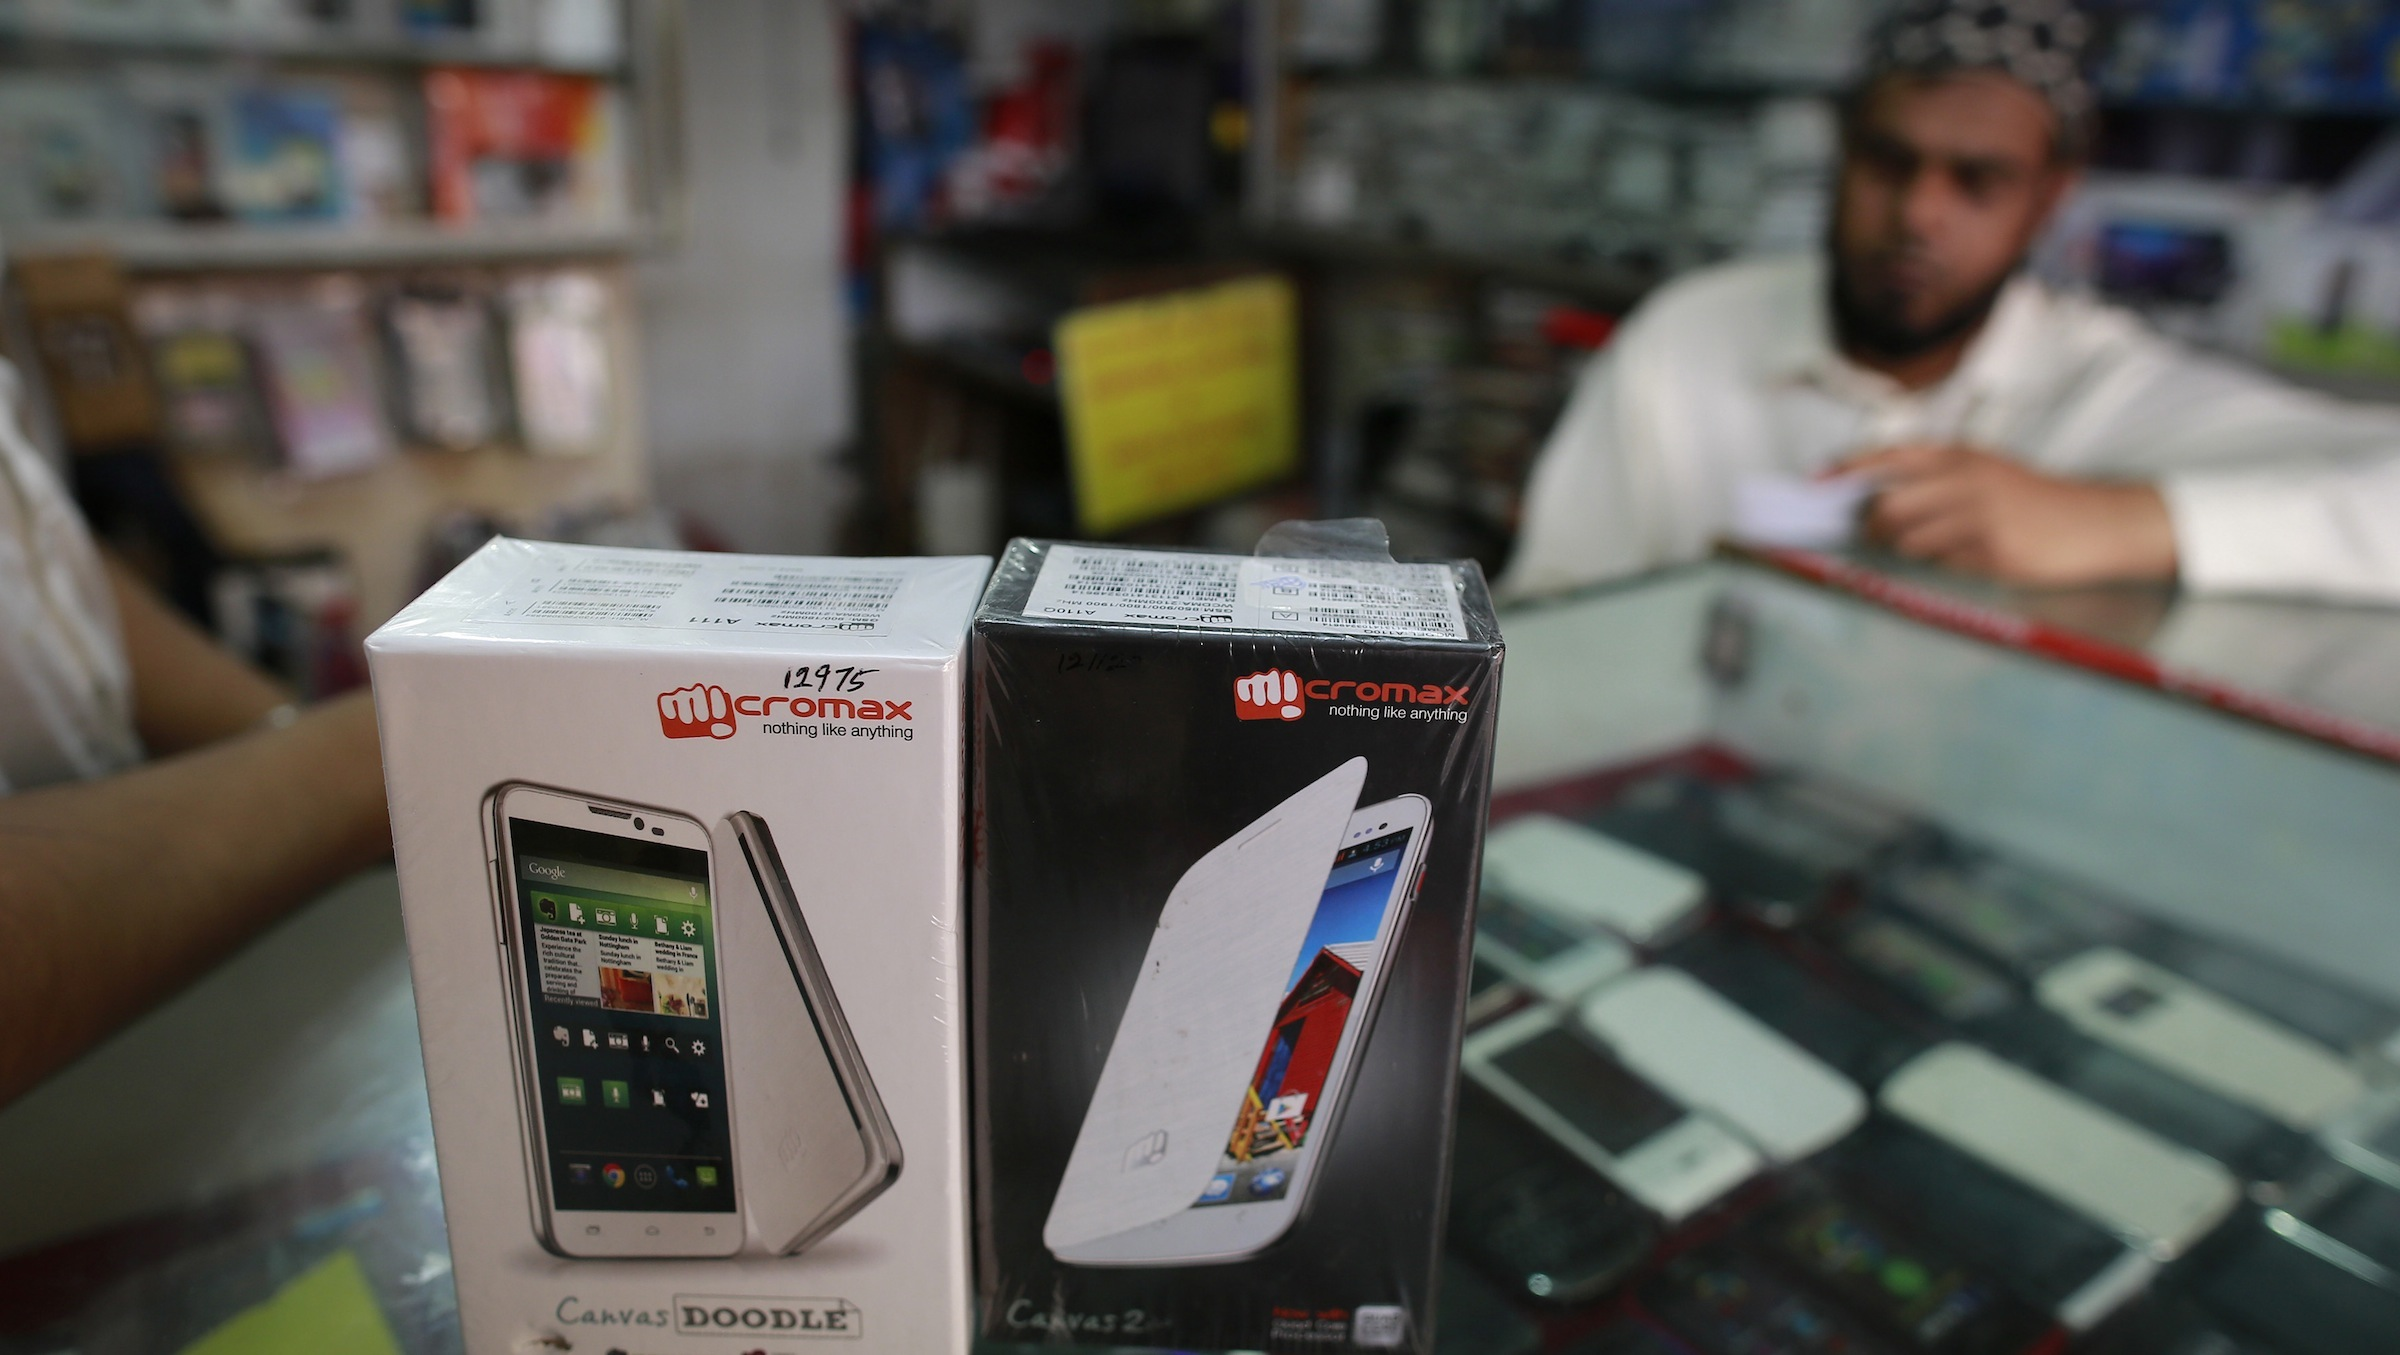 Micromax mobile phones are displayed at a mobile store in Mumbai December 4, 2013. India's Micromax, which has become the country's No. 2 smartphone brand just five years after selling its first handset - a $30 made-in-China model - is looking to go upmarket and overseas. The unlisted company sold 6.8 million phones in the July-September quarter including 2.2 million smartphones, and is on track to surpass $1 billion in sales in the fiscal year ending in March. Picture taken December 4, 2013. REUTERS/Danish Siddiqui (INDIA - Tags: BUSINESS TELECOMS) - RTX16FSW